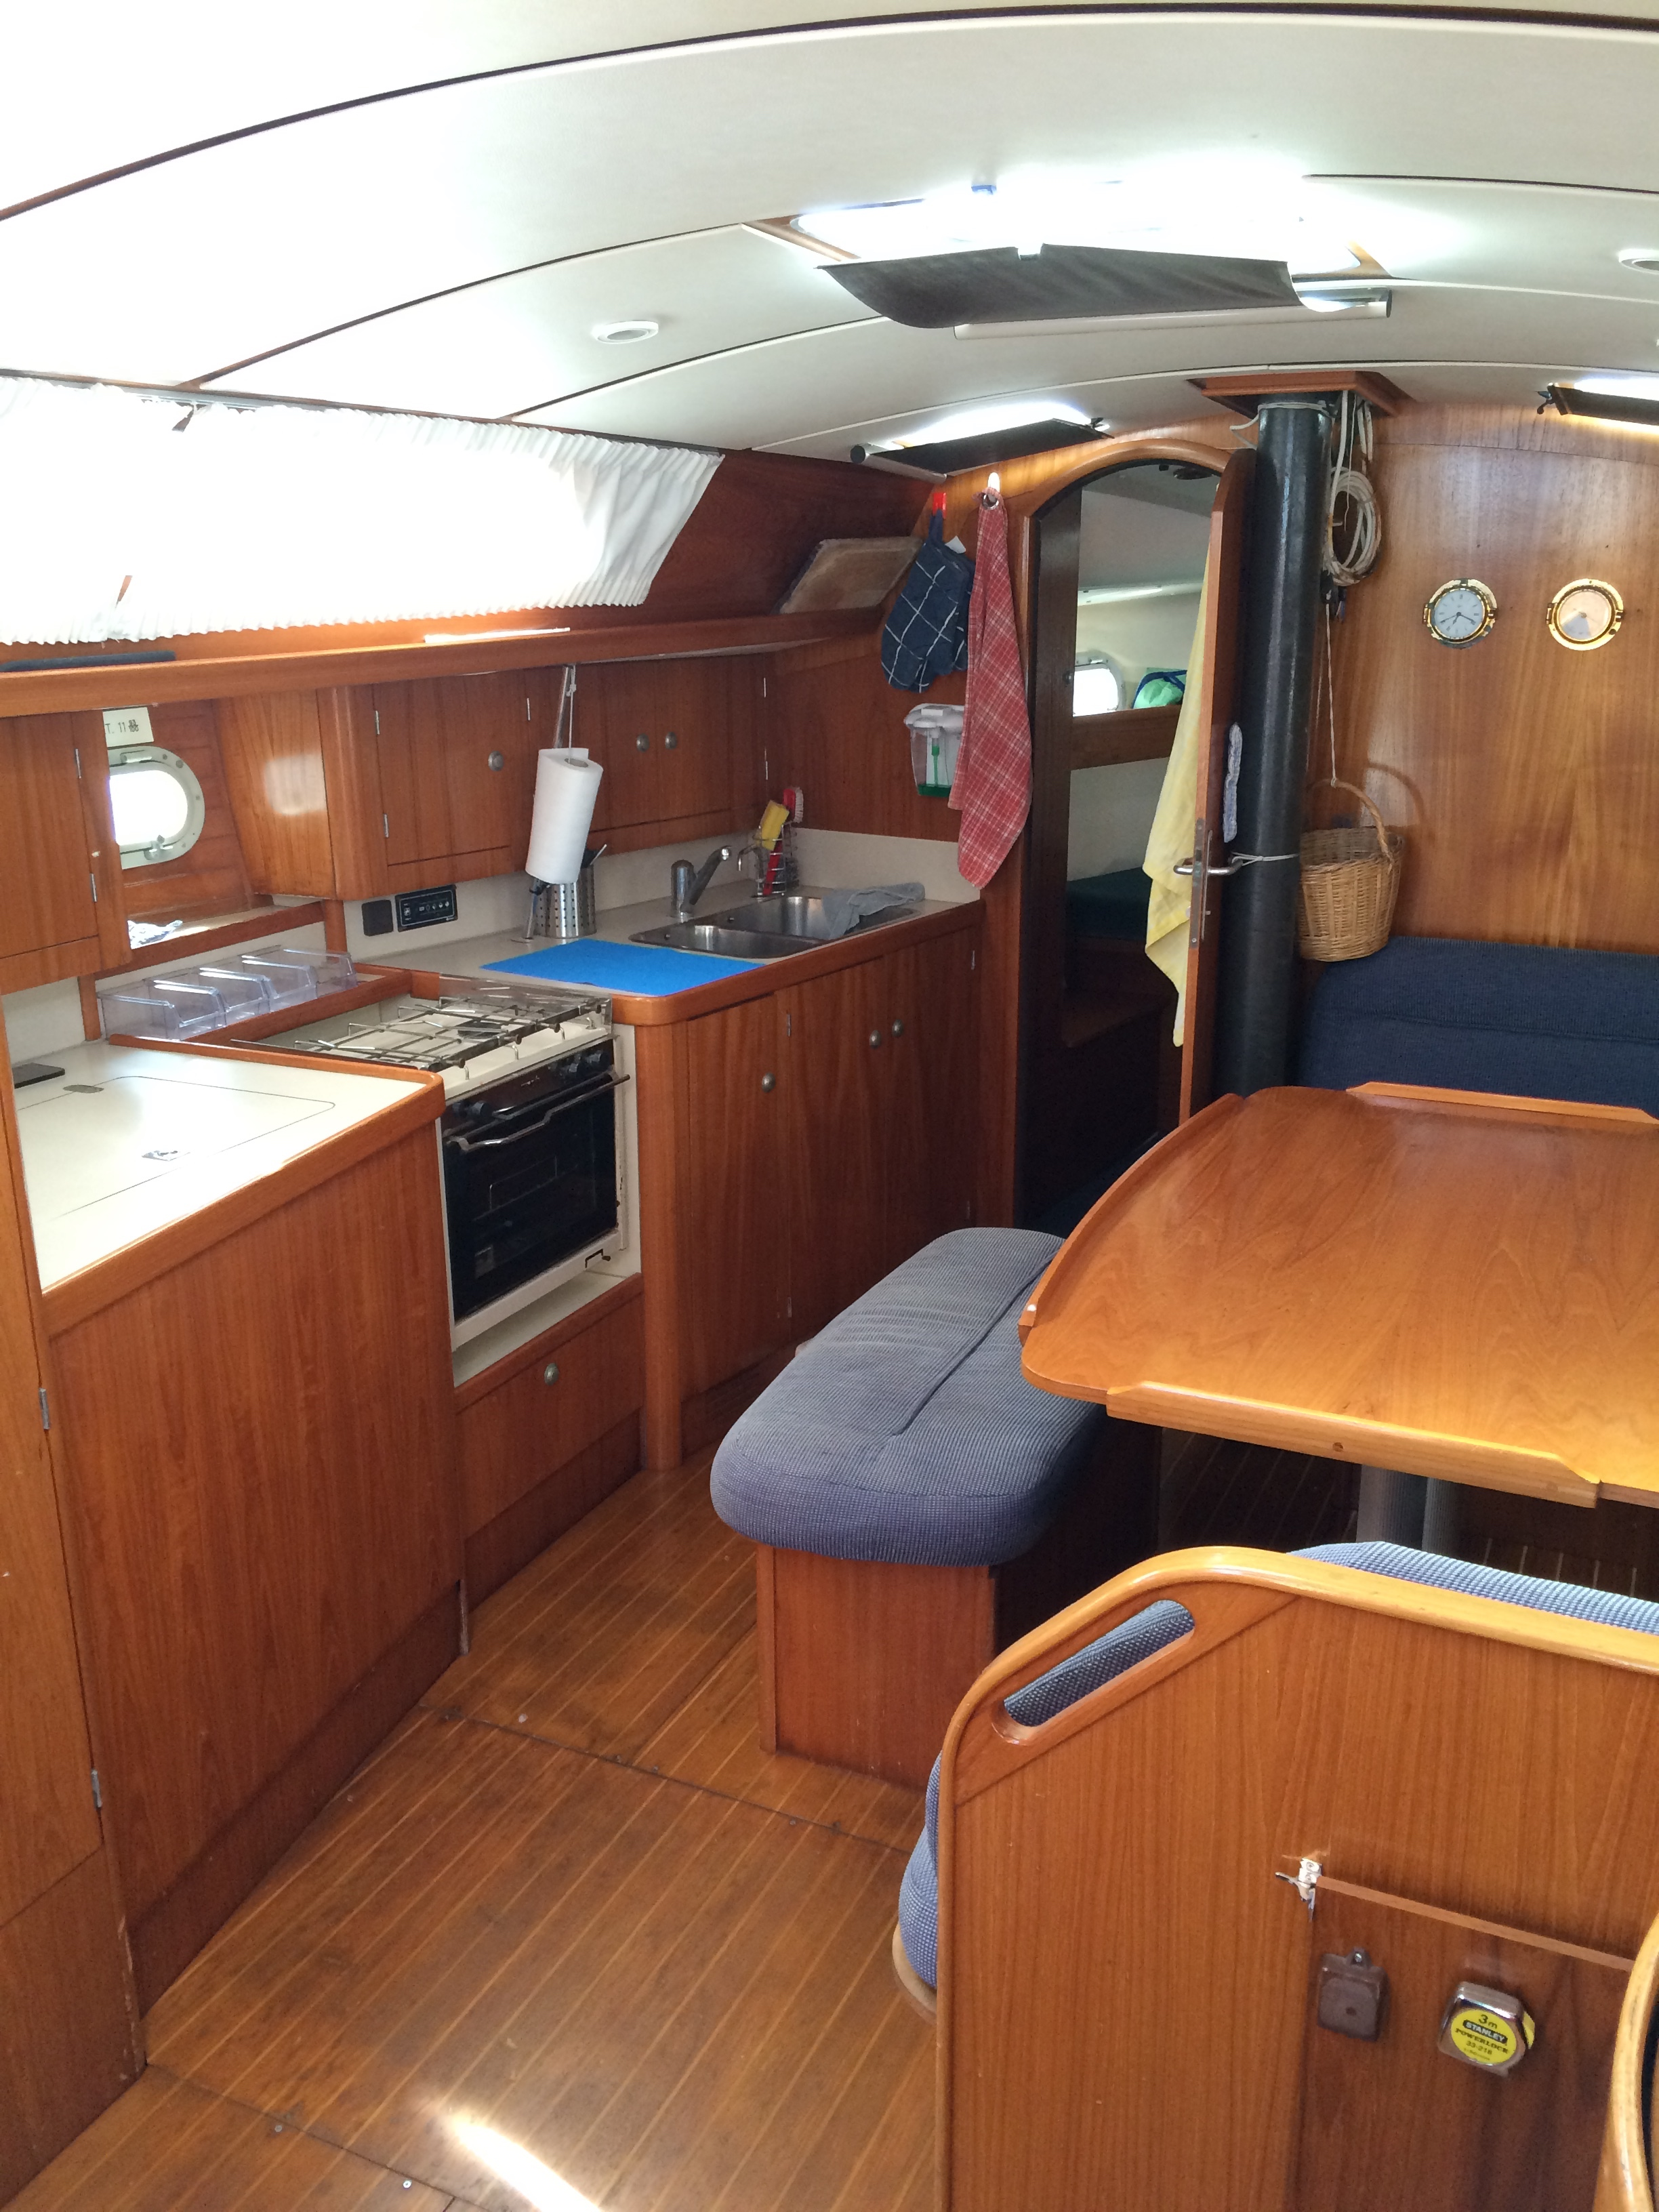 Kitchen and lounge of the Sun Odyssey 37.1 / Cocina y salon del Sun Odyssey 37.1